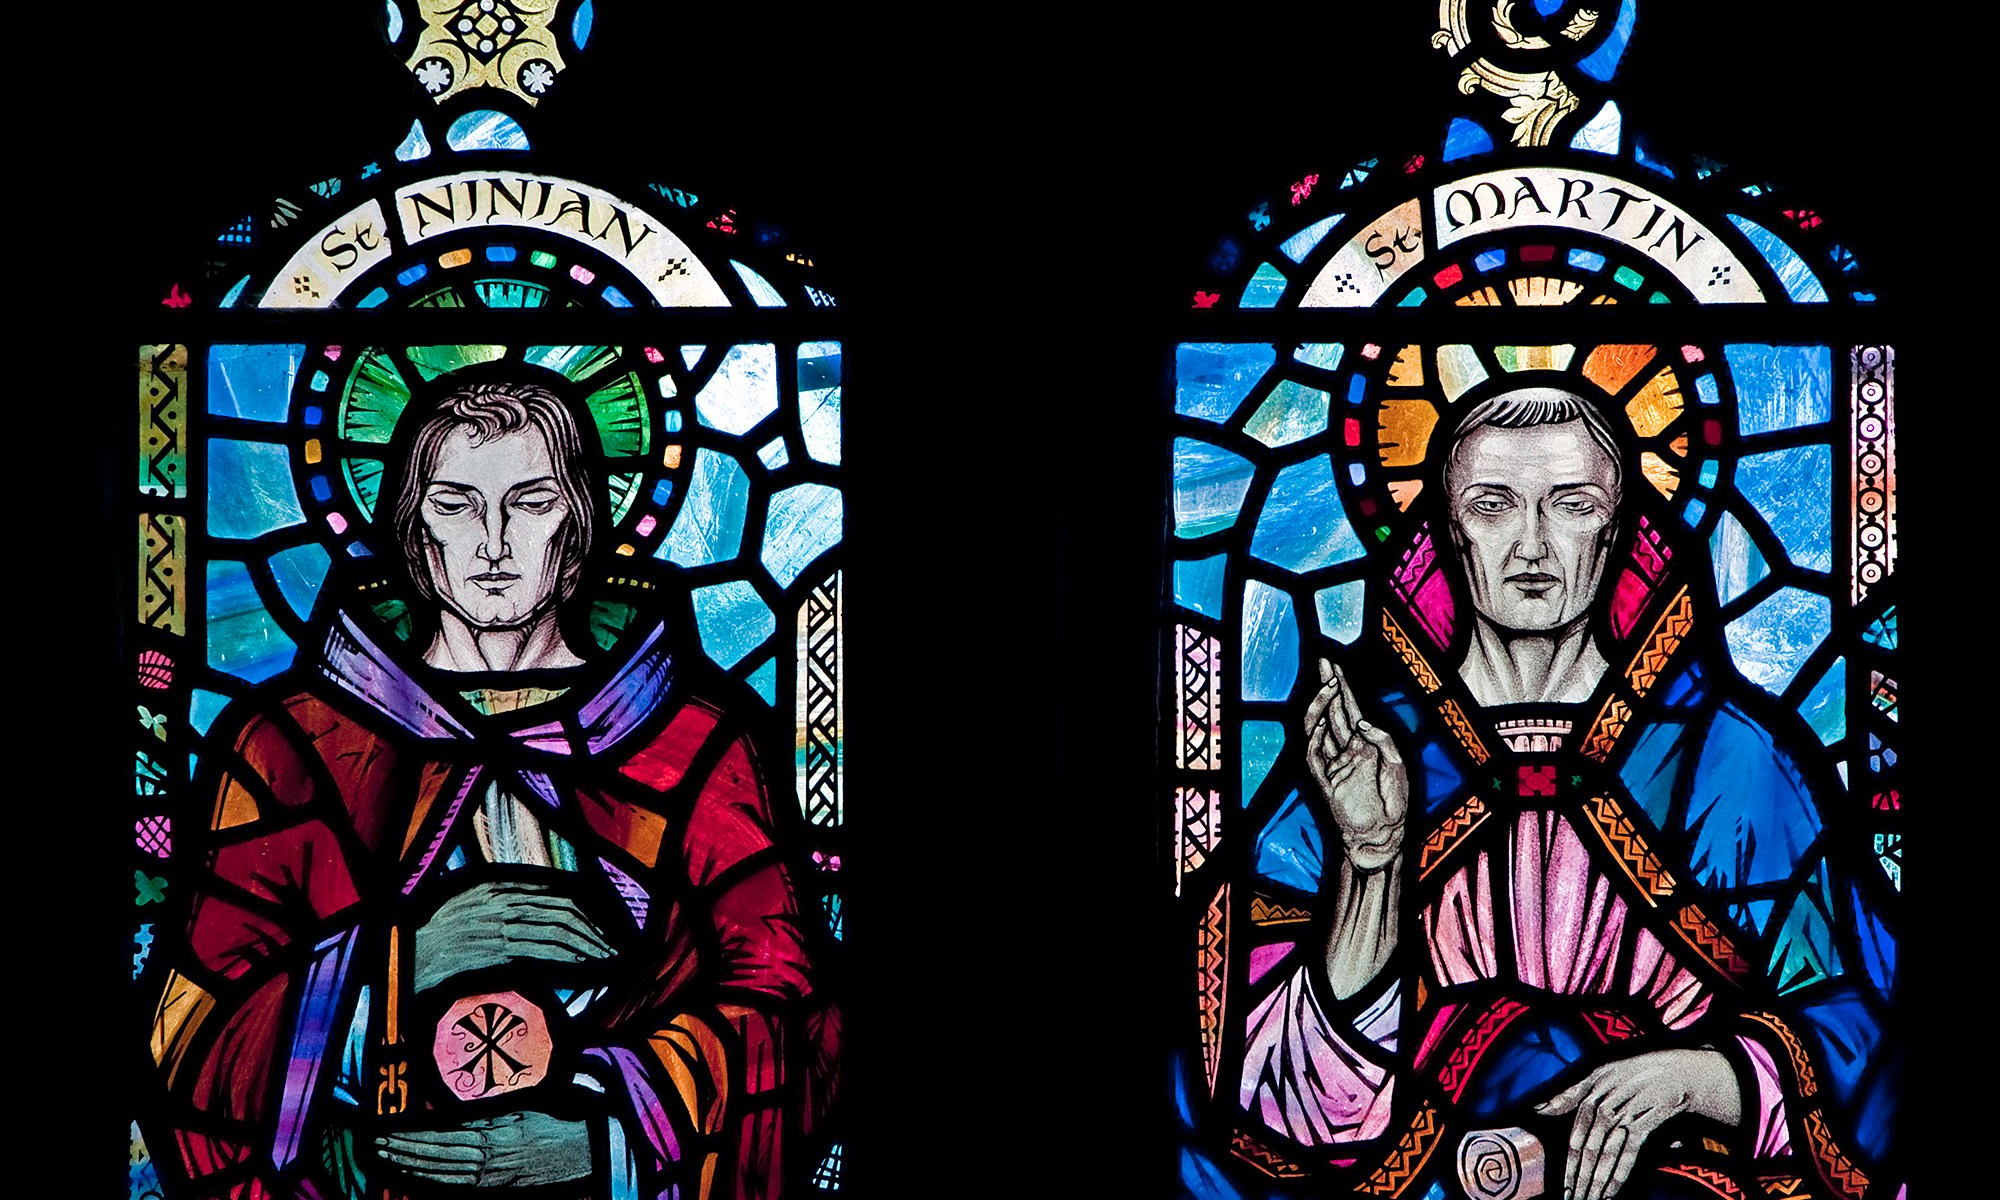 St Ninian and St Michael Stained Glass